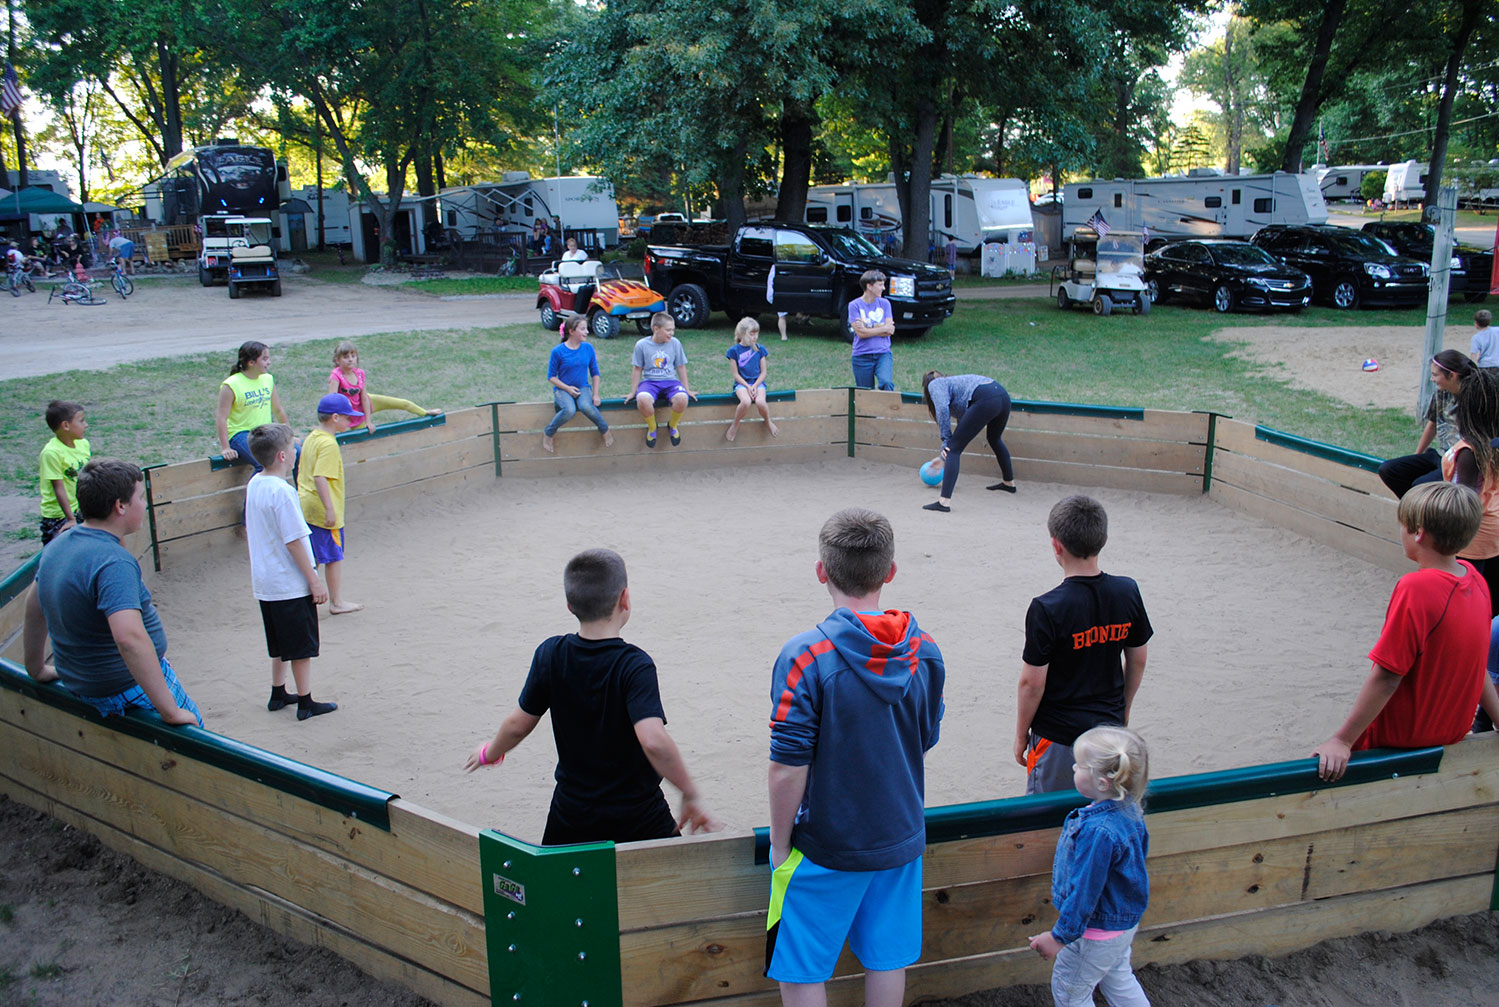 kids playing gagaball at Gateway Park Campground